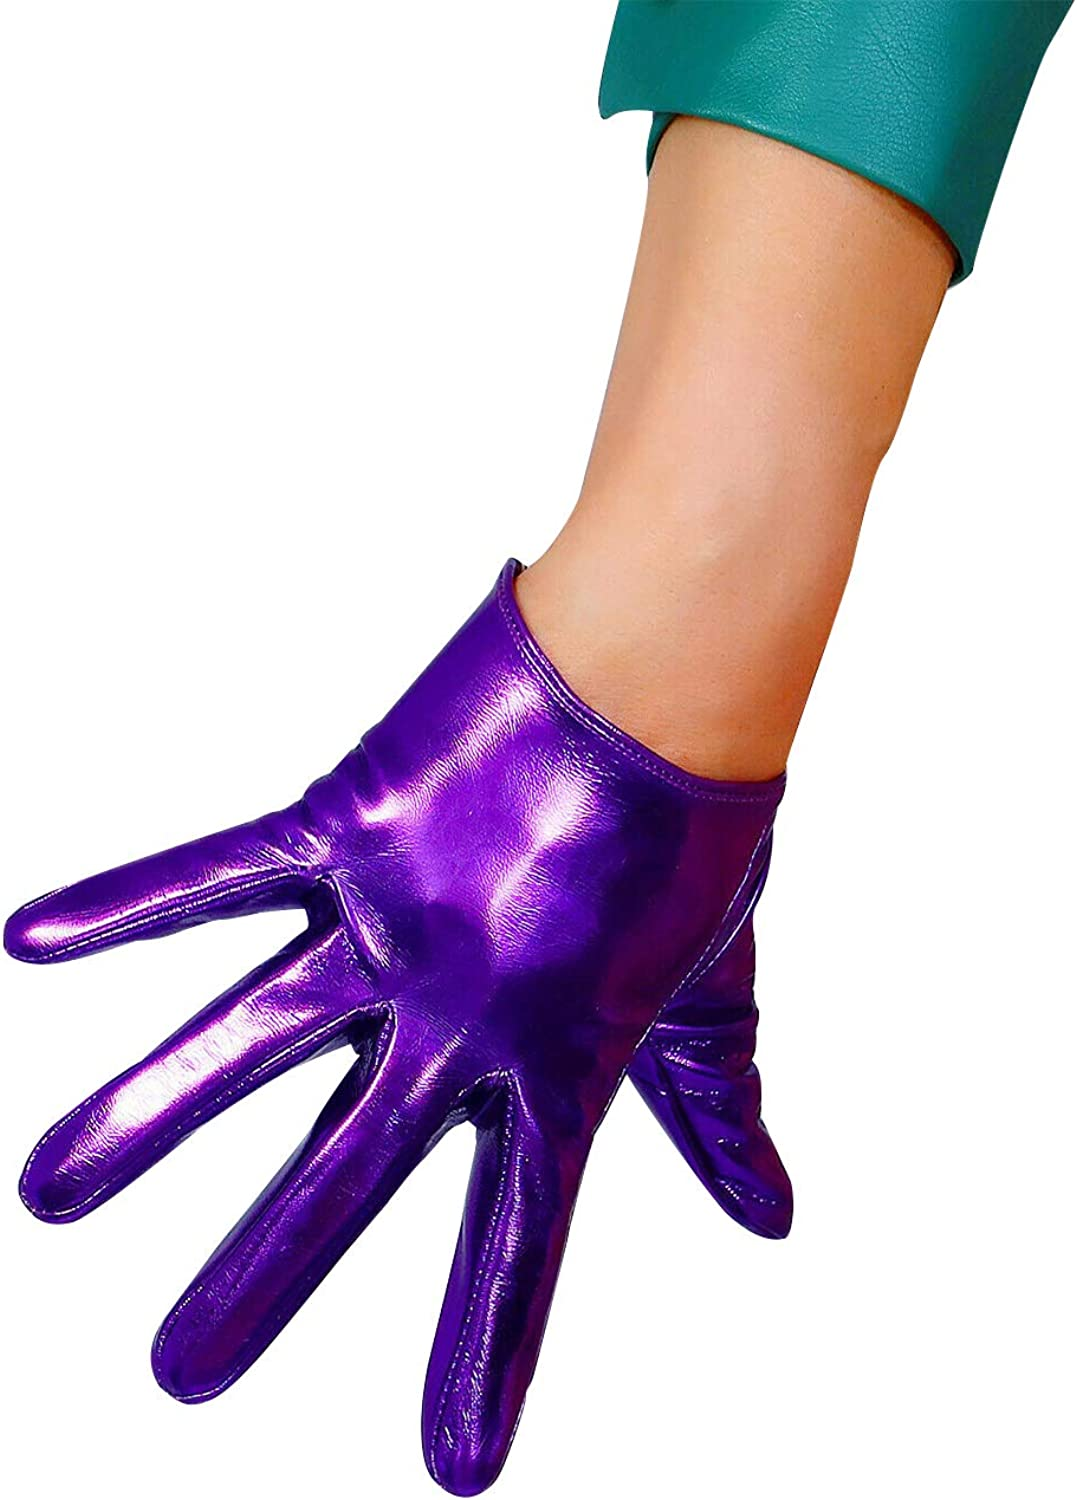 DooWay Women Long Opera Gloves Faux Patent Leather PU Stretch Unlined for Costume Party Banquet Shine Purple